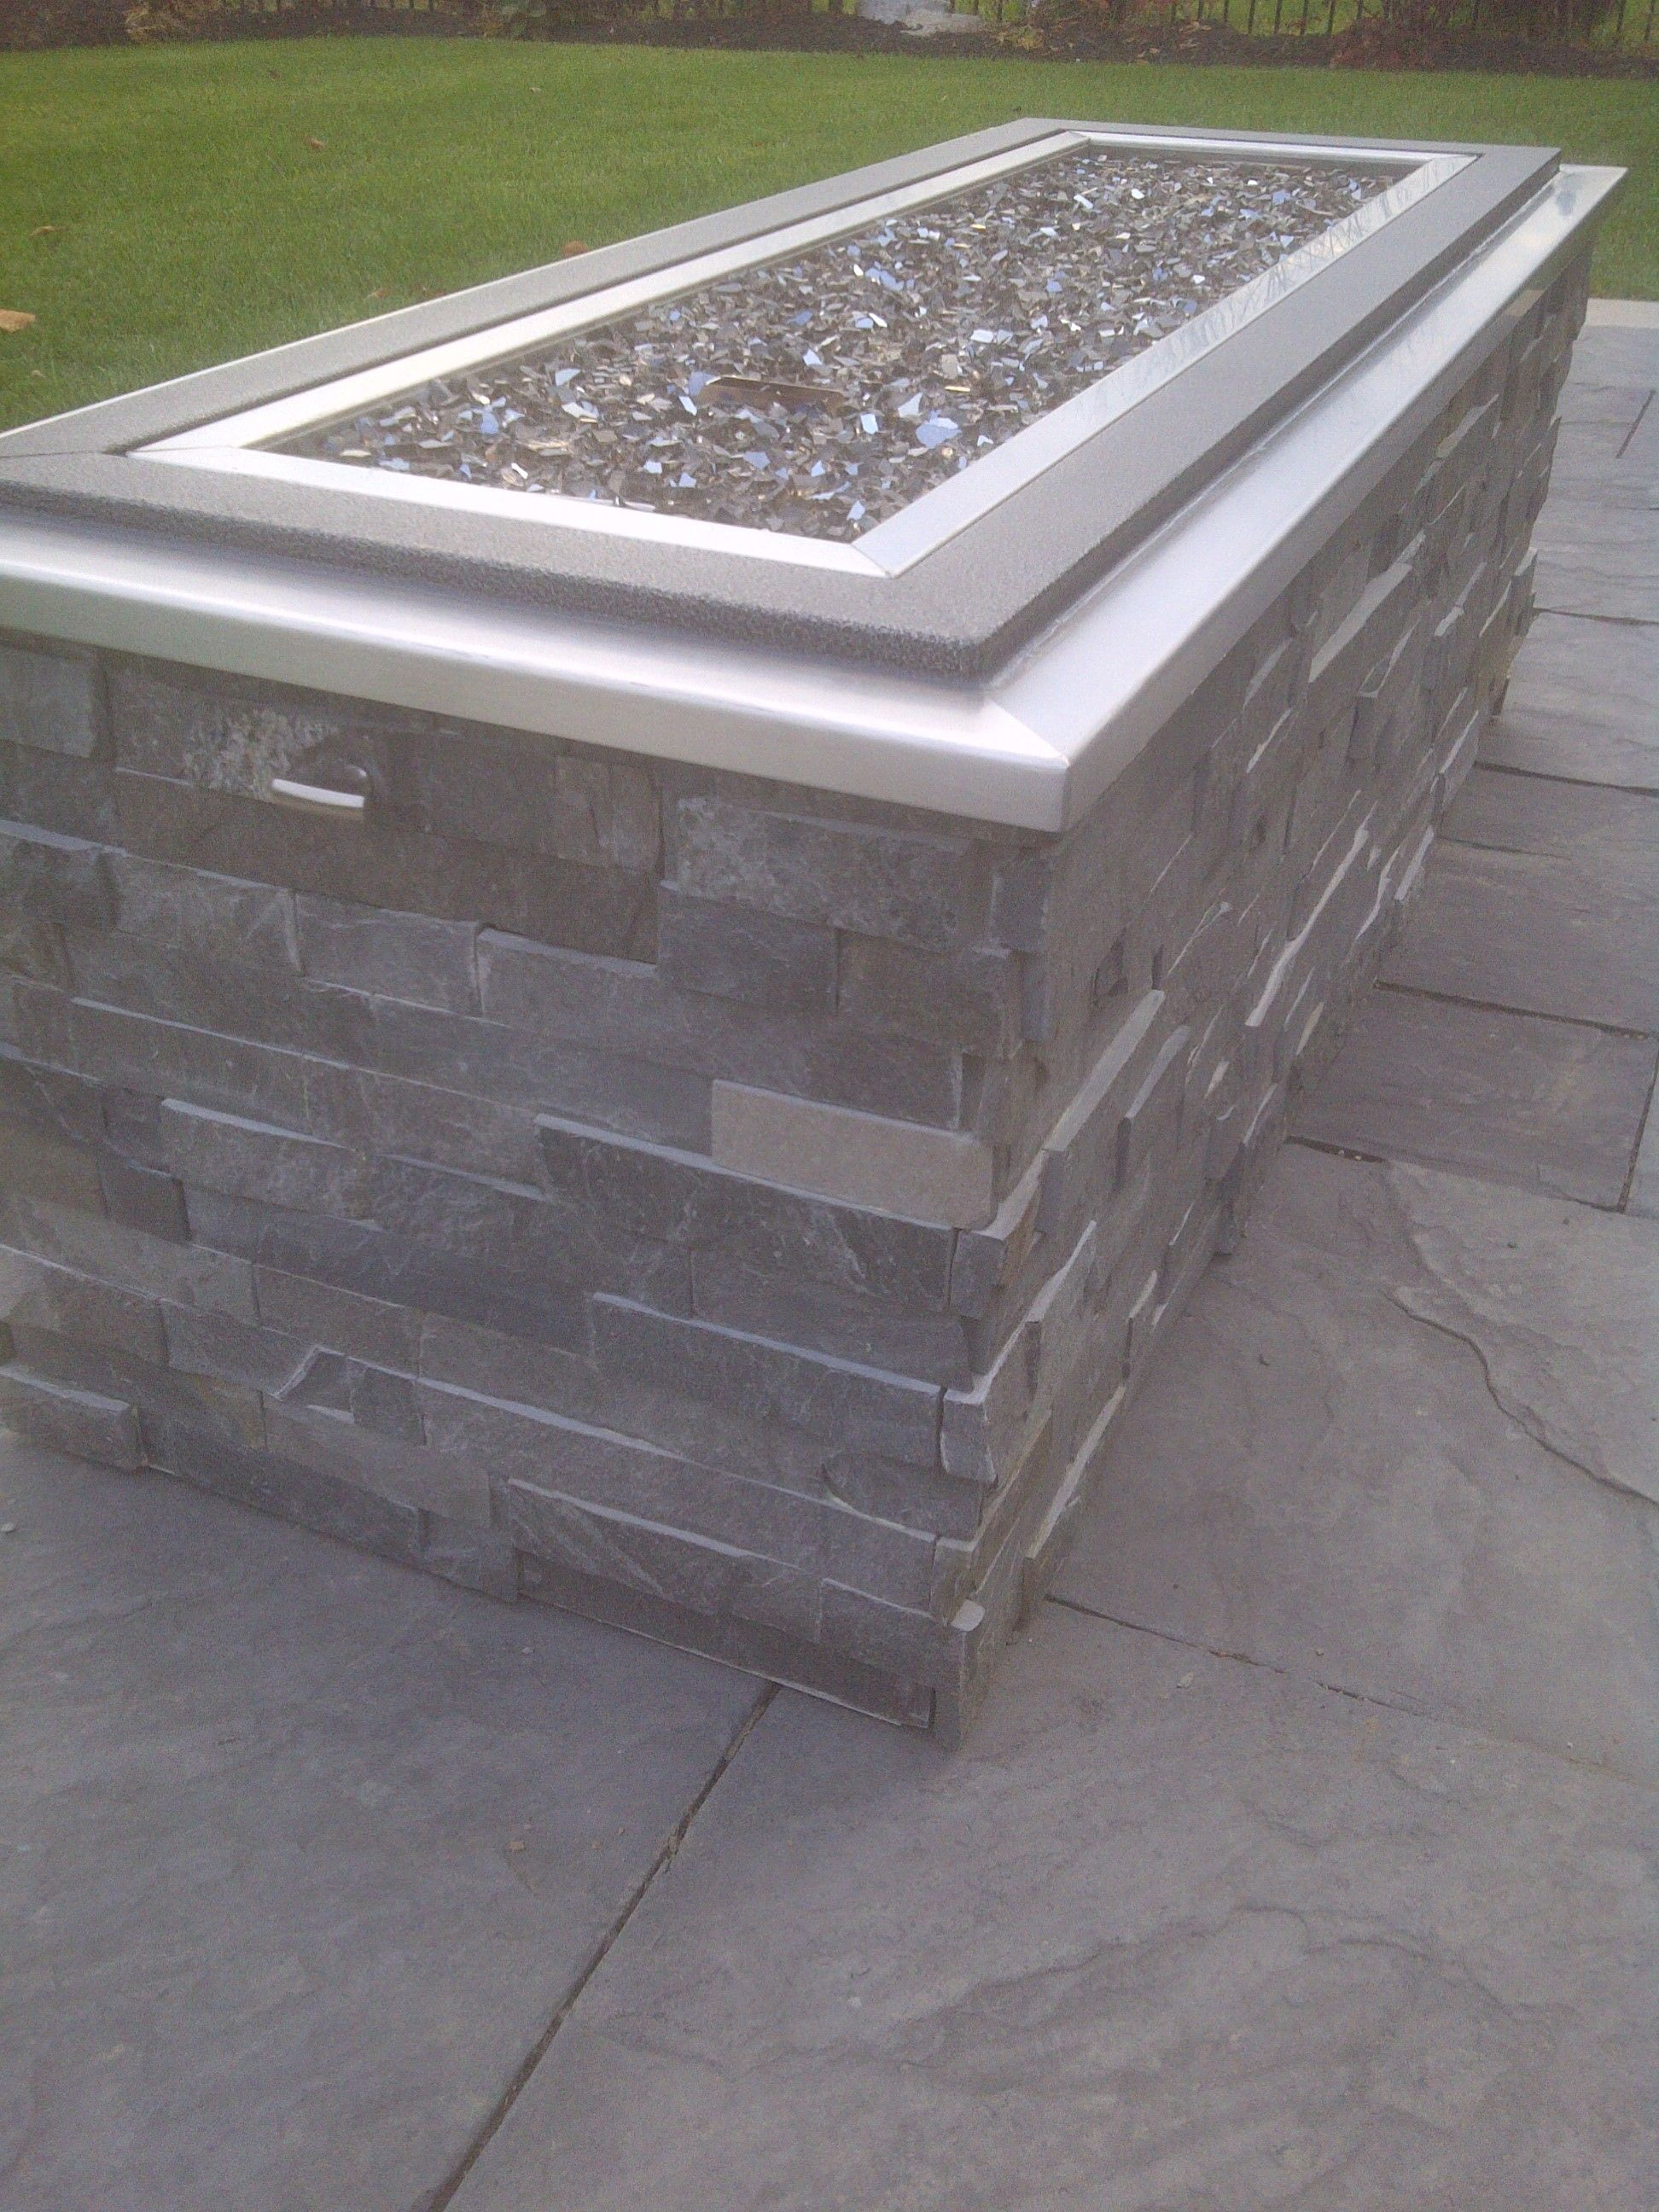 Raised Gas Fire Pit With Crushed Glass Stone Cladding And Stainless pertaining to dimensions 1944 X 2592